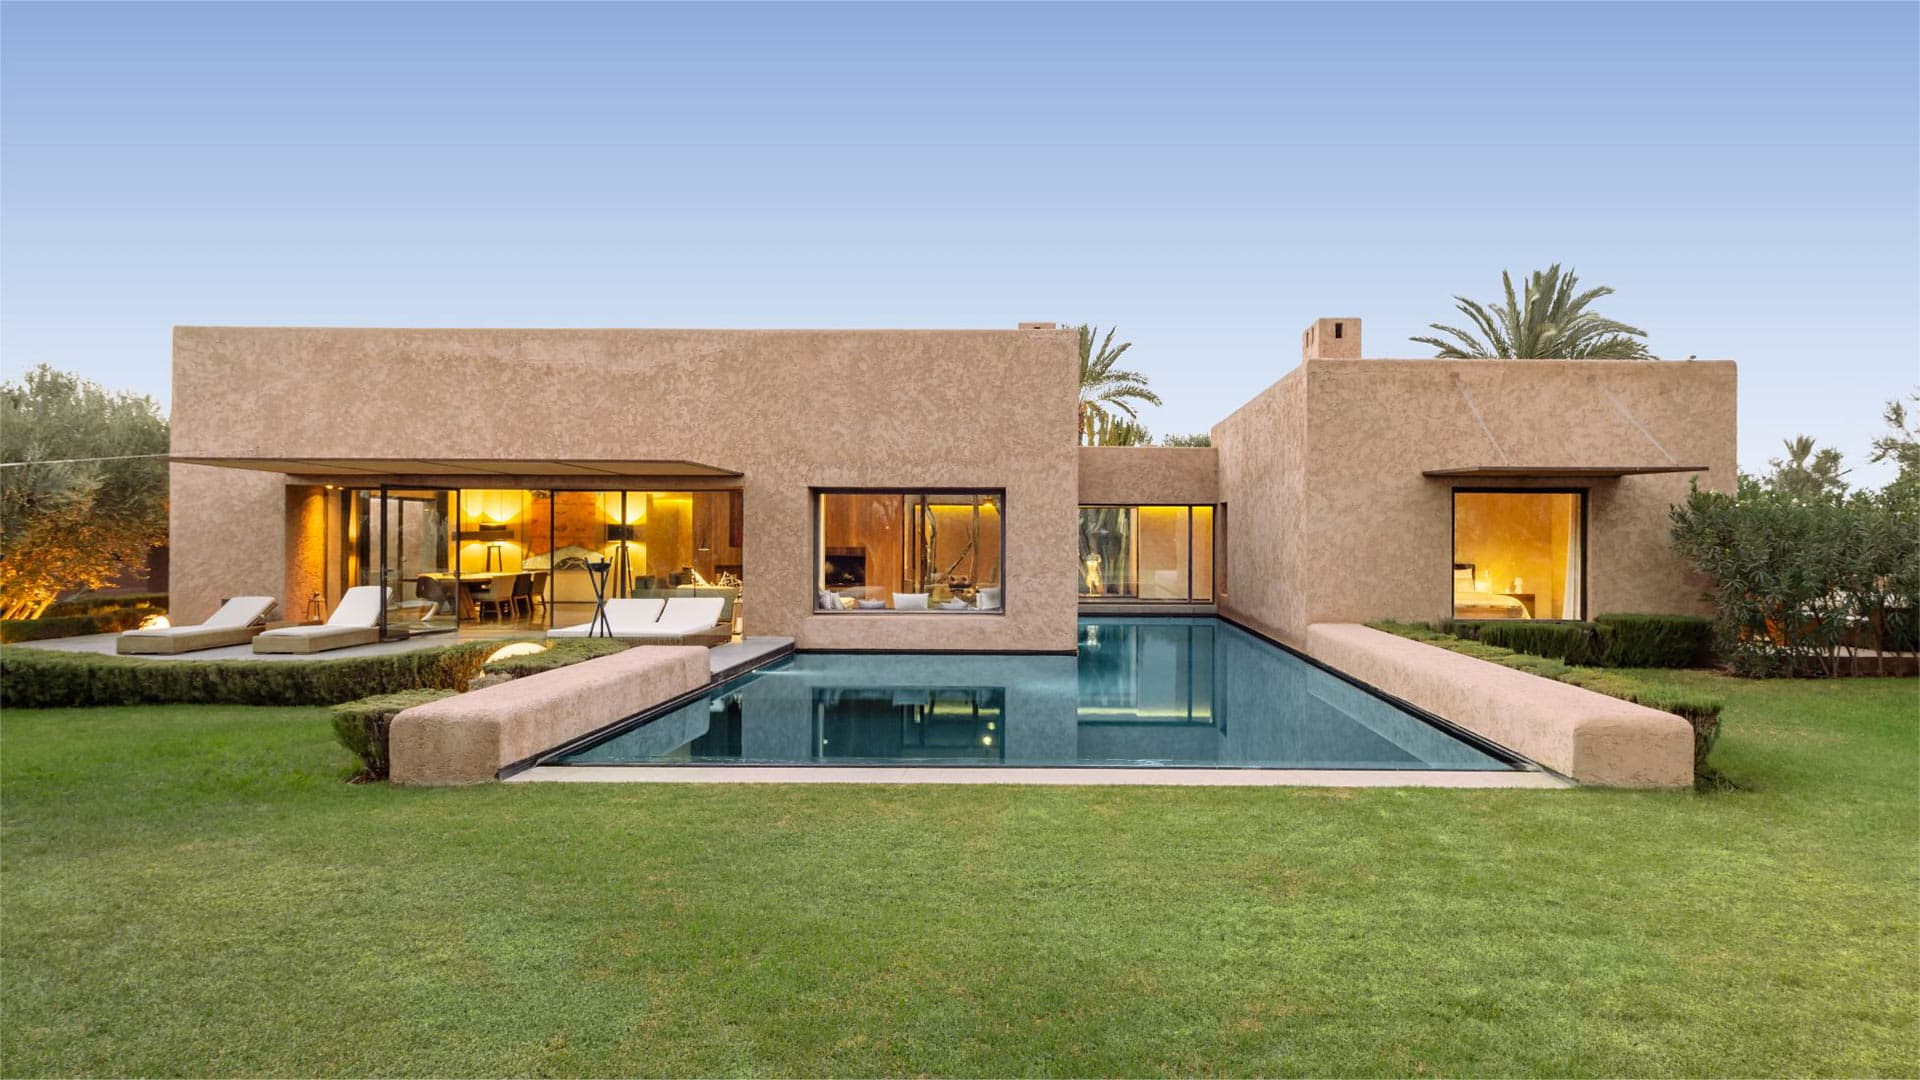 Villa Villa RL, Location à Marrakech